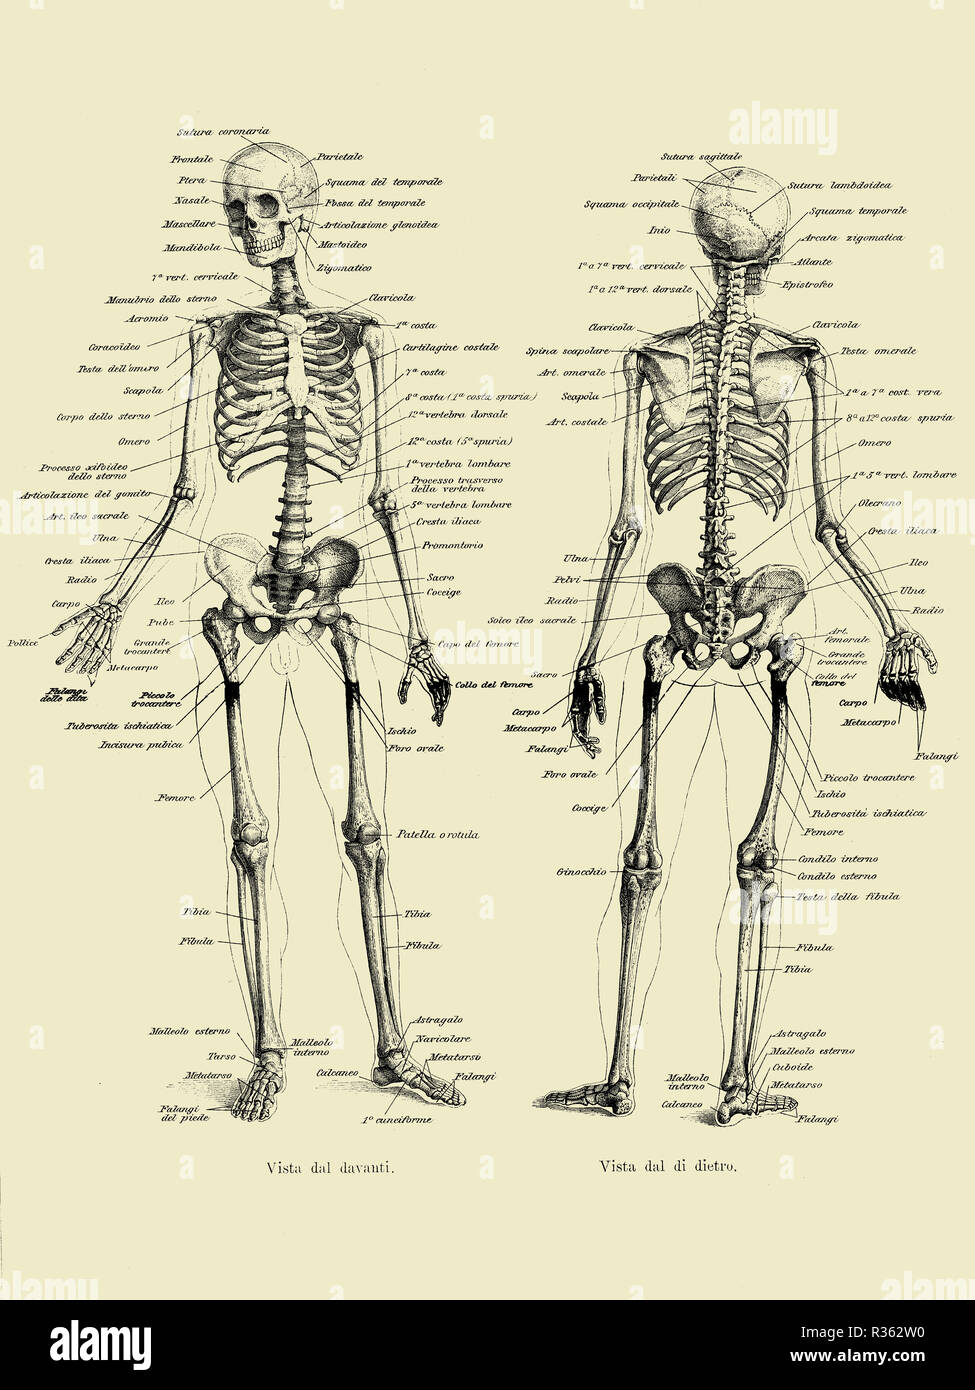 Vintage illustration of anatomy, human complete bone skeletal structure front and back with Italian anatomical descriptions - Stock Image